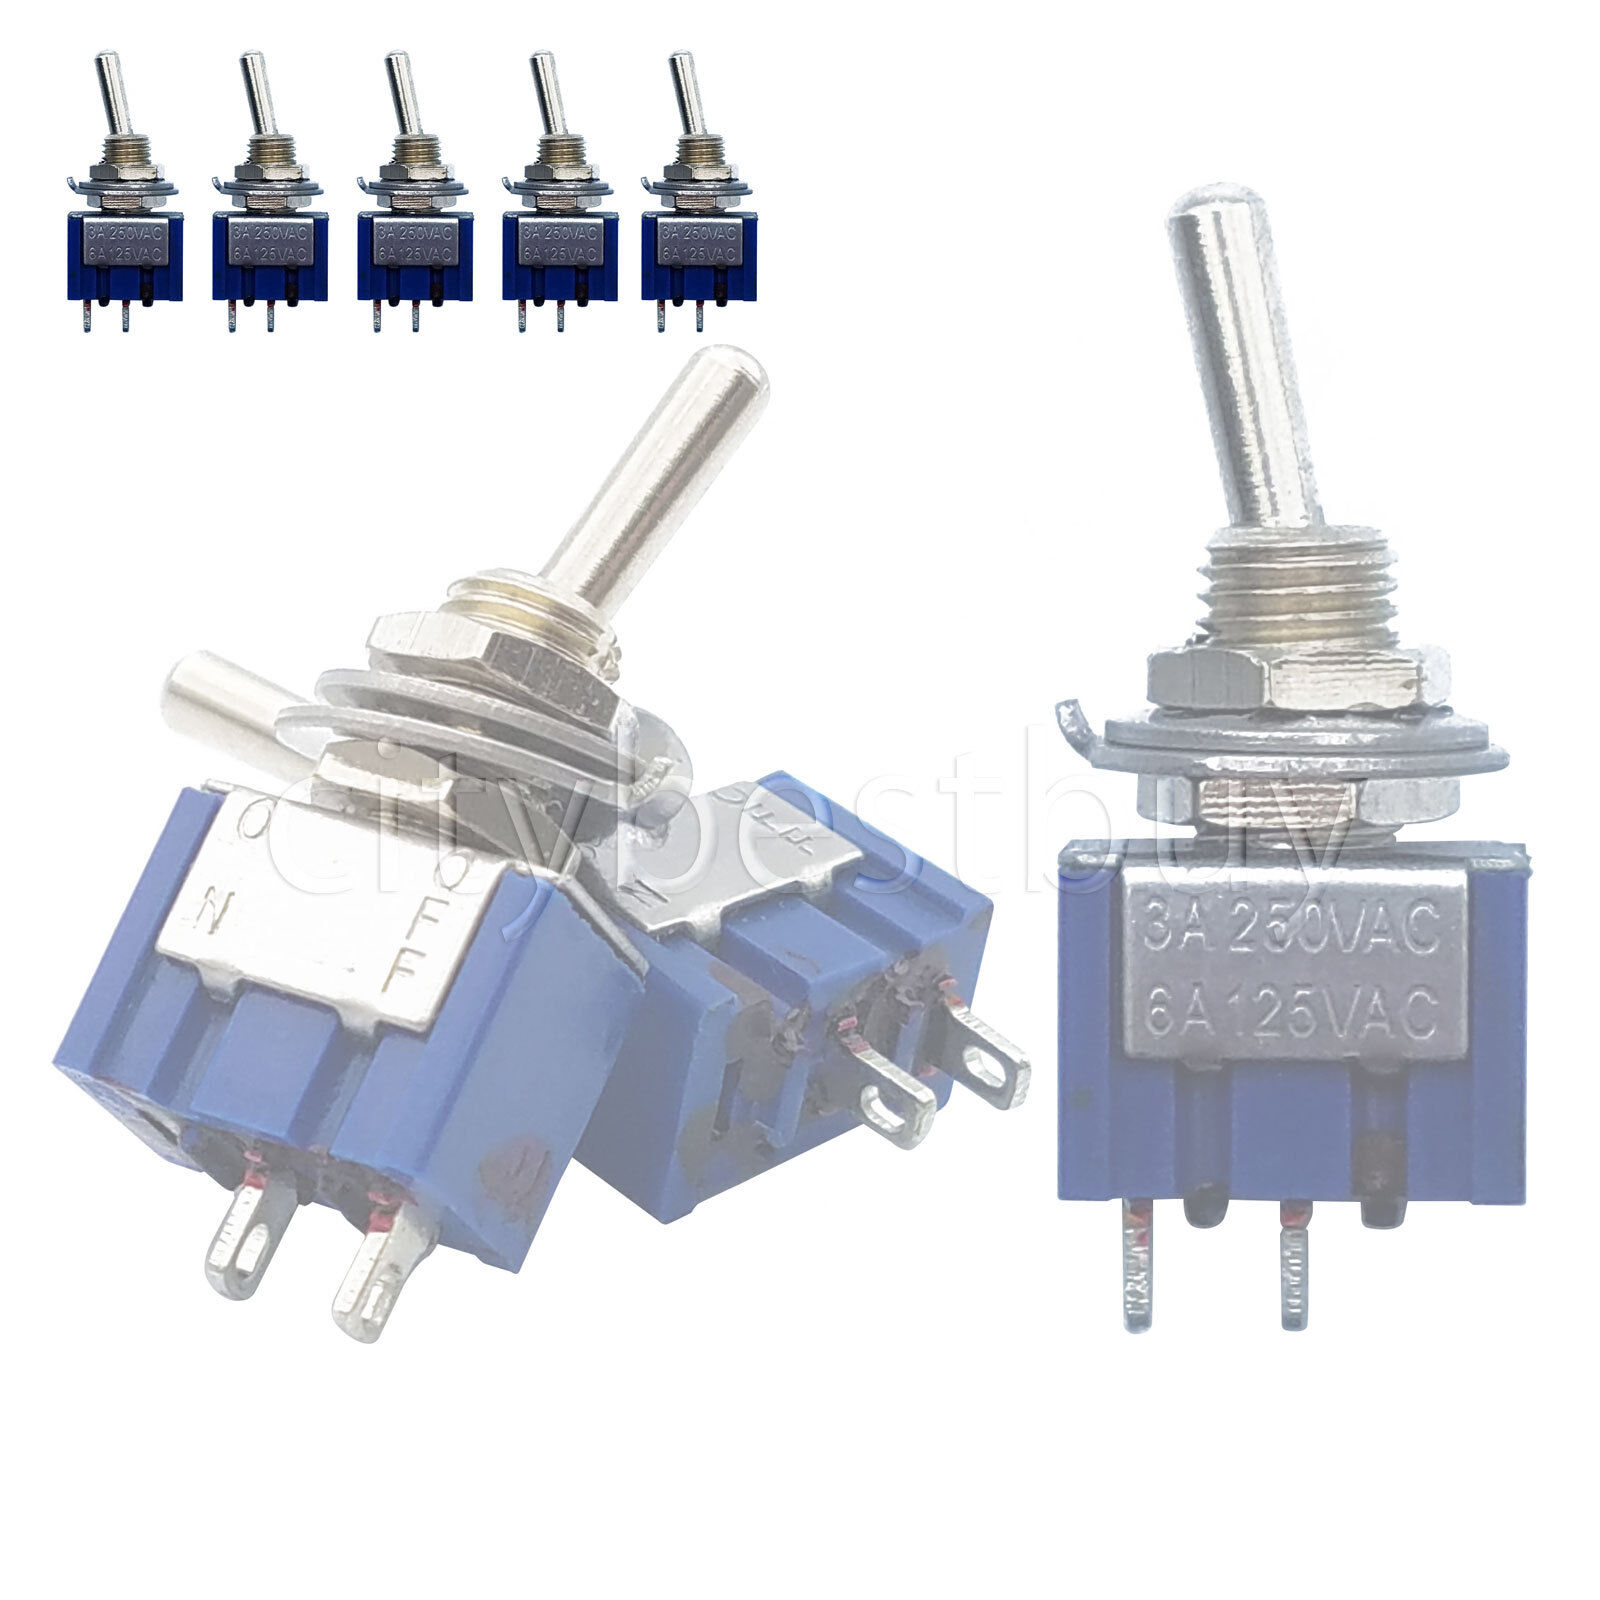 5pcs Mini Toggle Switches Mts 101 Single Pole Double Throw On Off Rocker Switch Spst Onoff 6a Blue